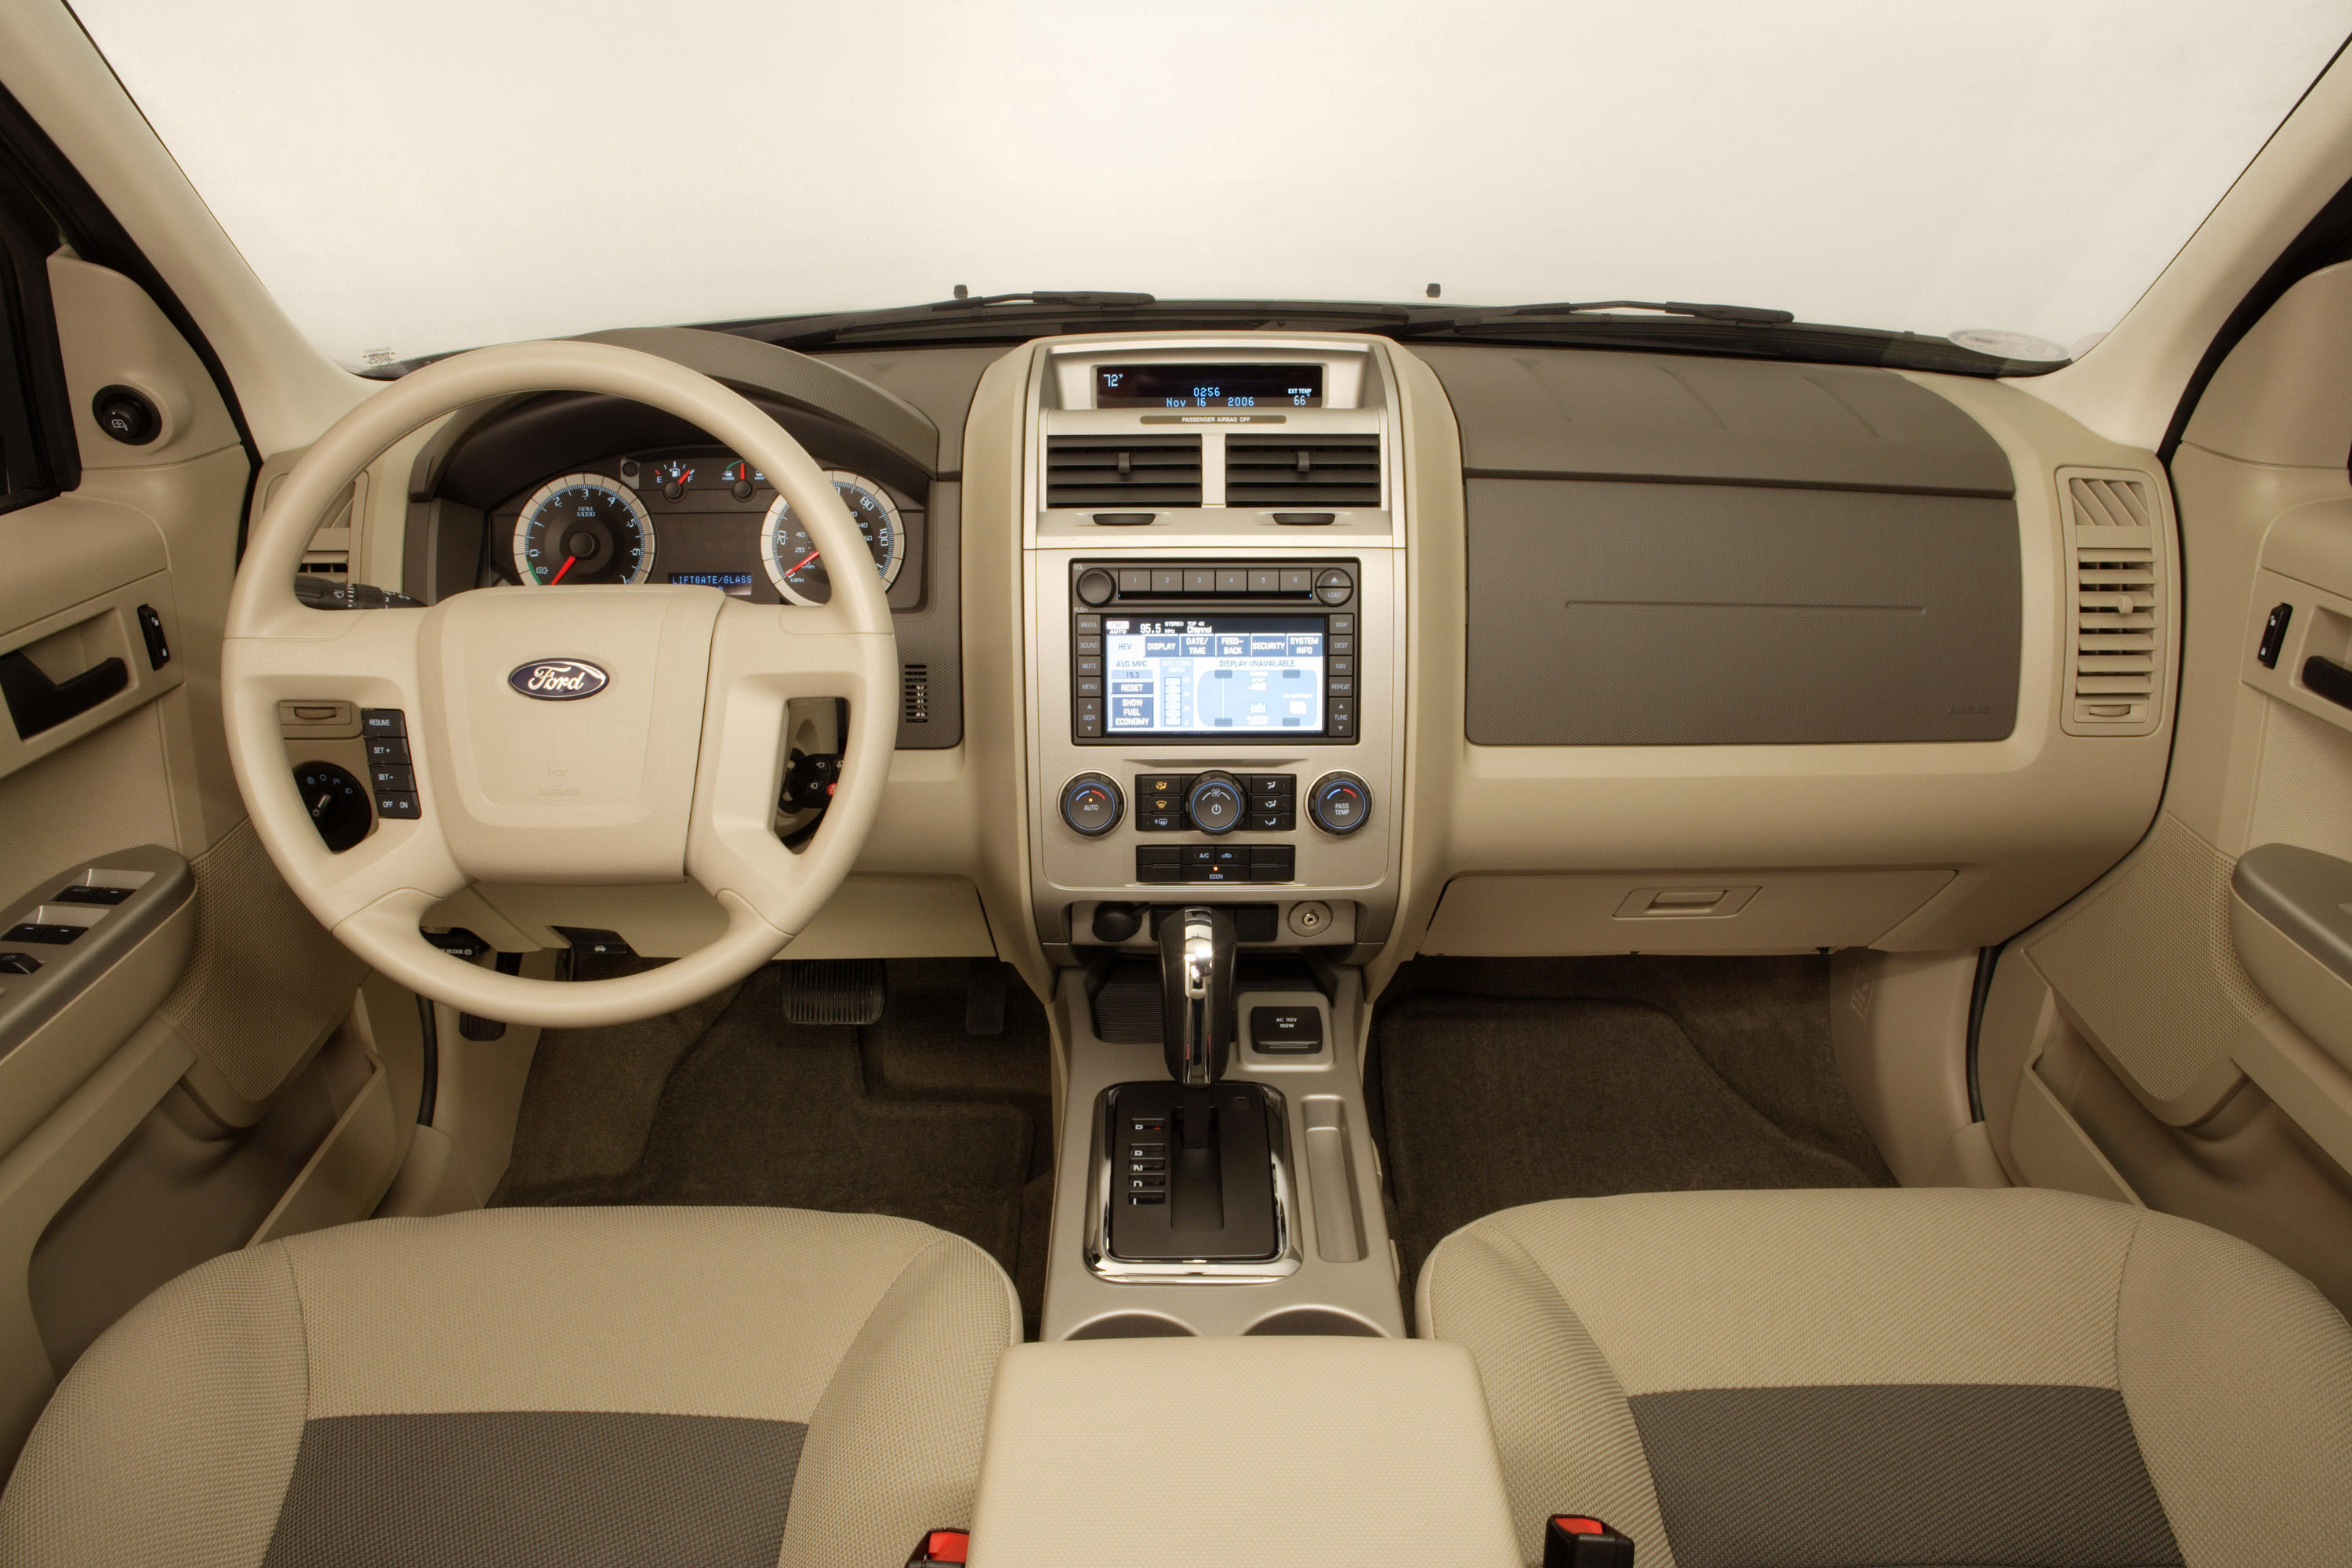 2008-ford-escape-interior-1